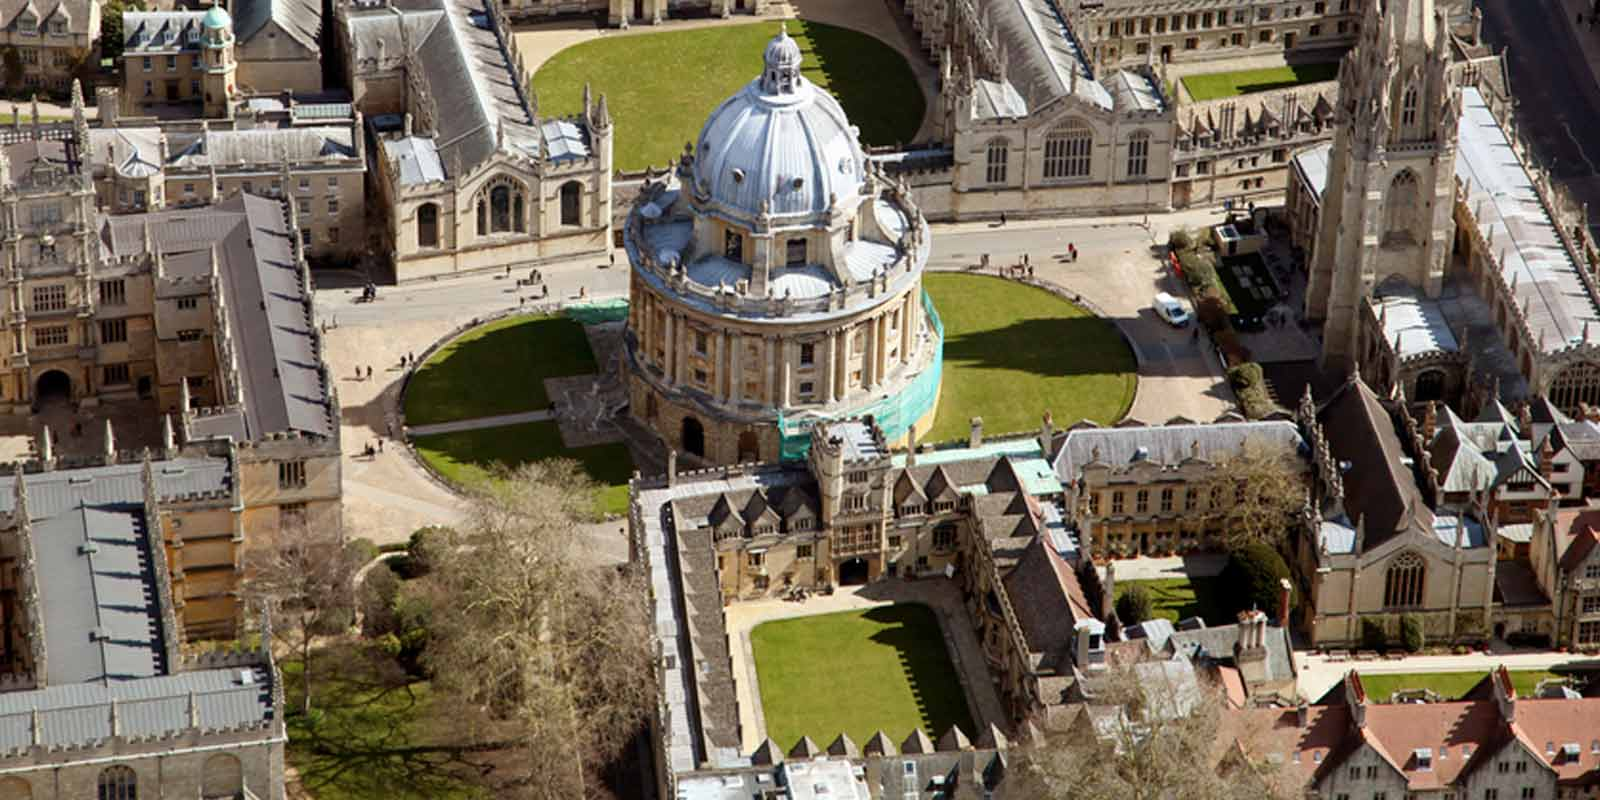 Oxford landscape aerial view